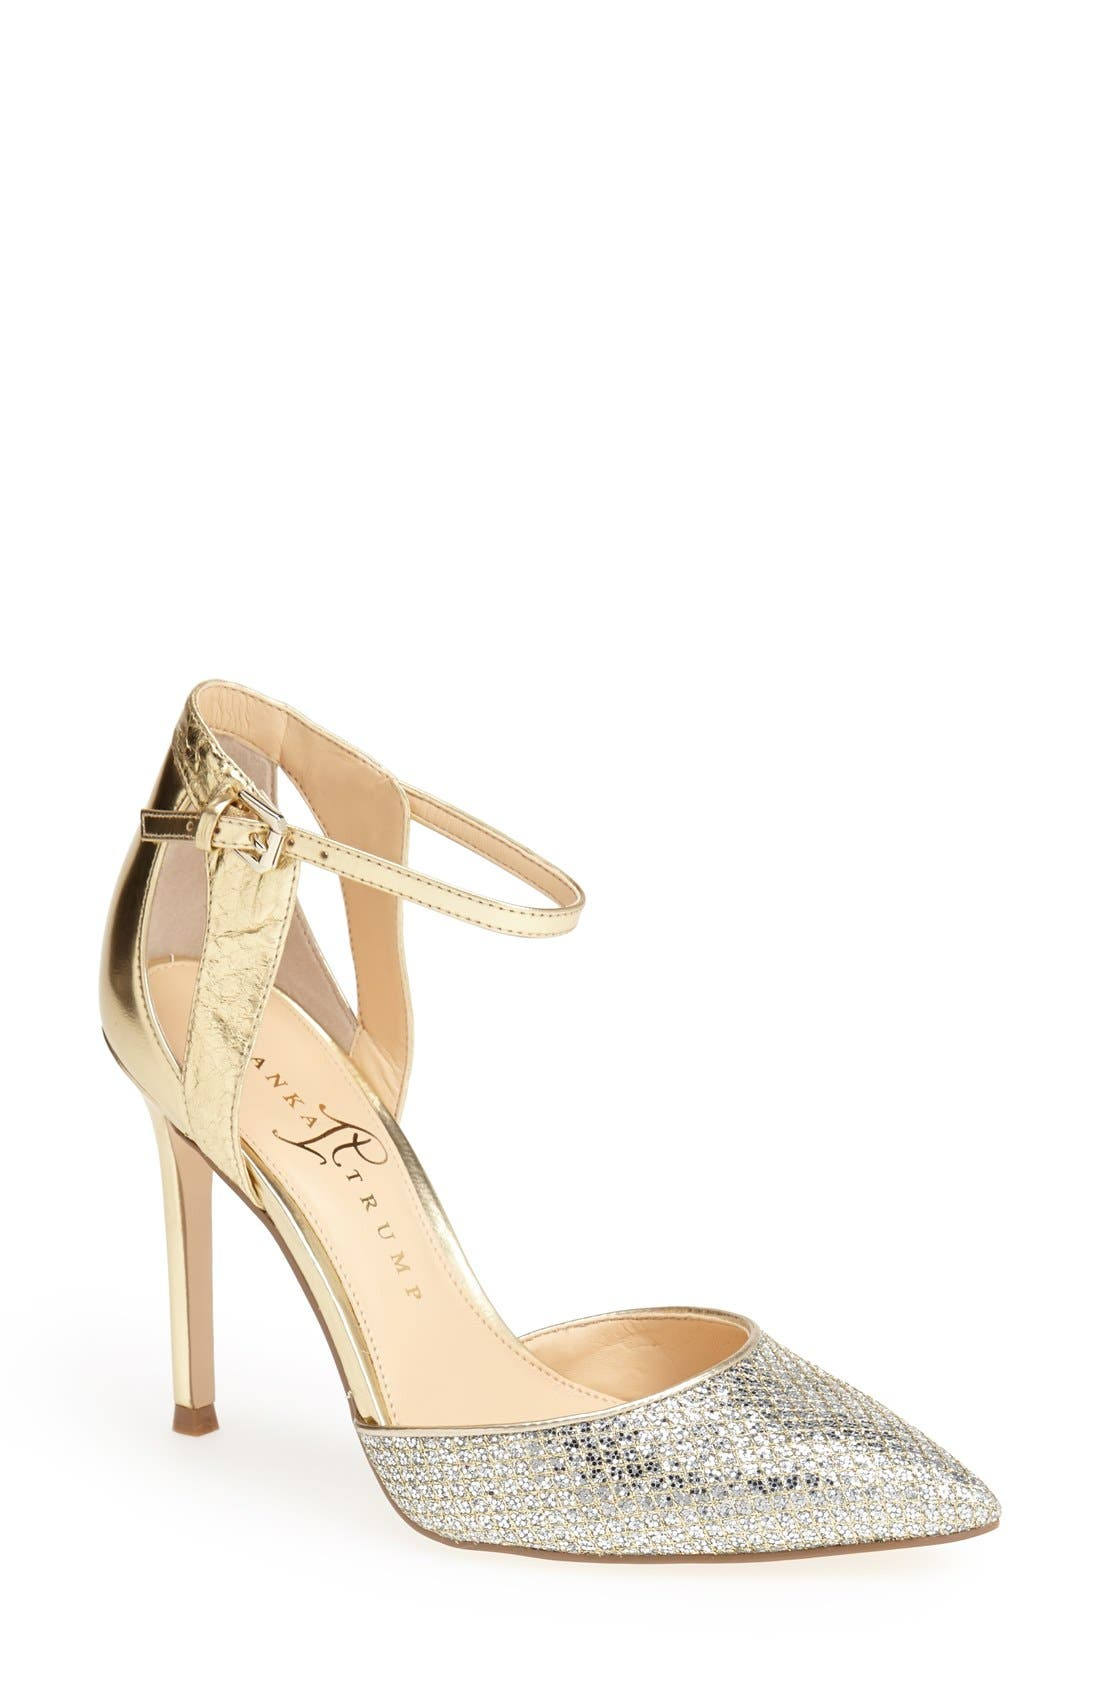 Alternate Image 1 Selected - Ivanka Trump 'Gees' Ankle Strap Pointed Toe Pump (Women)